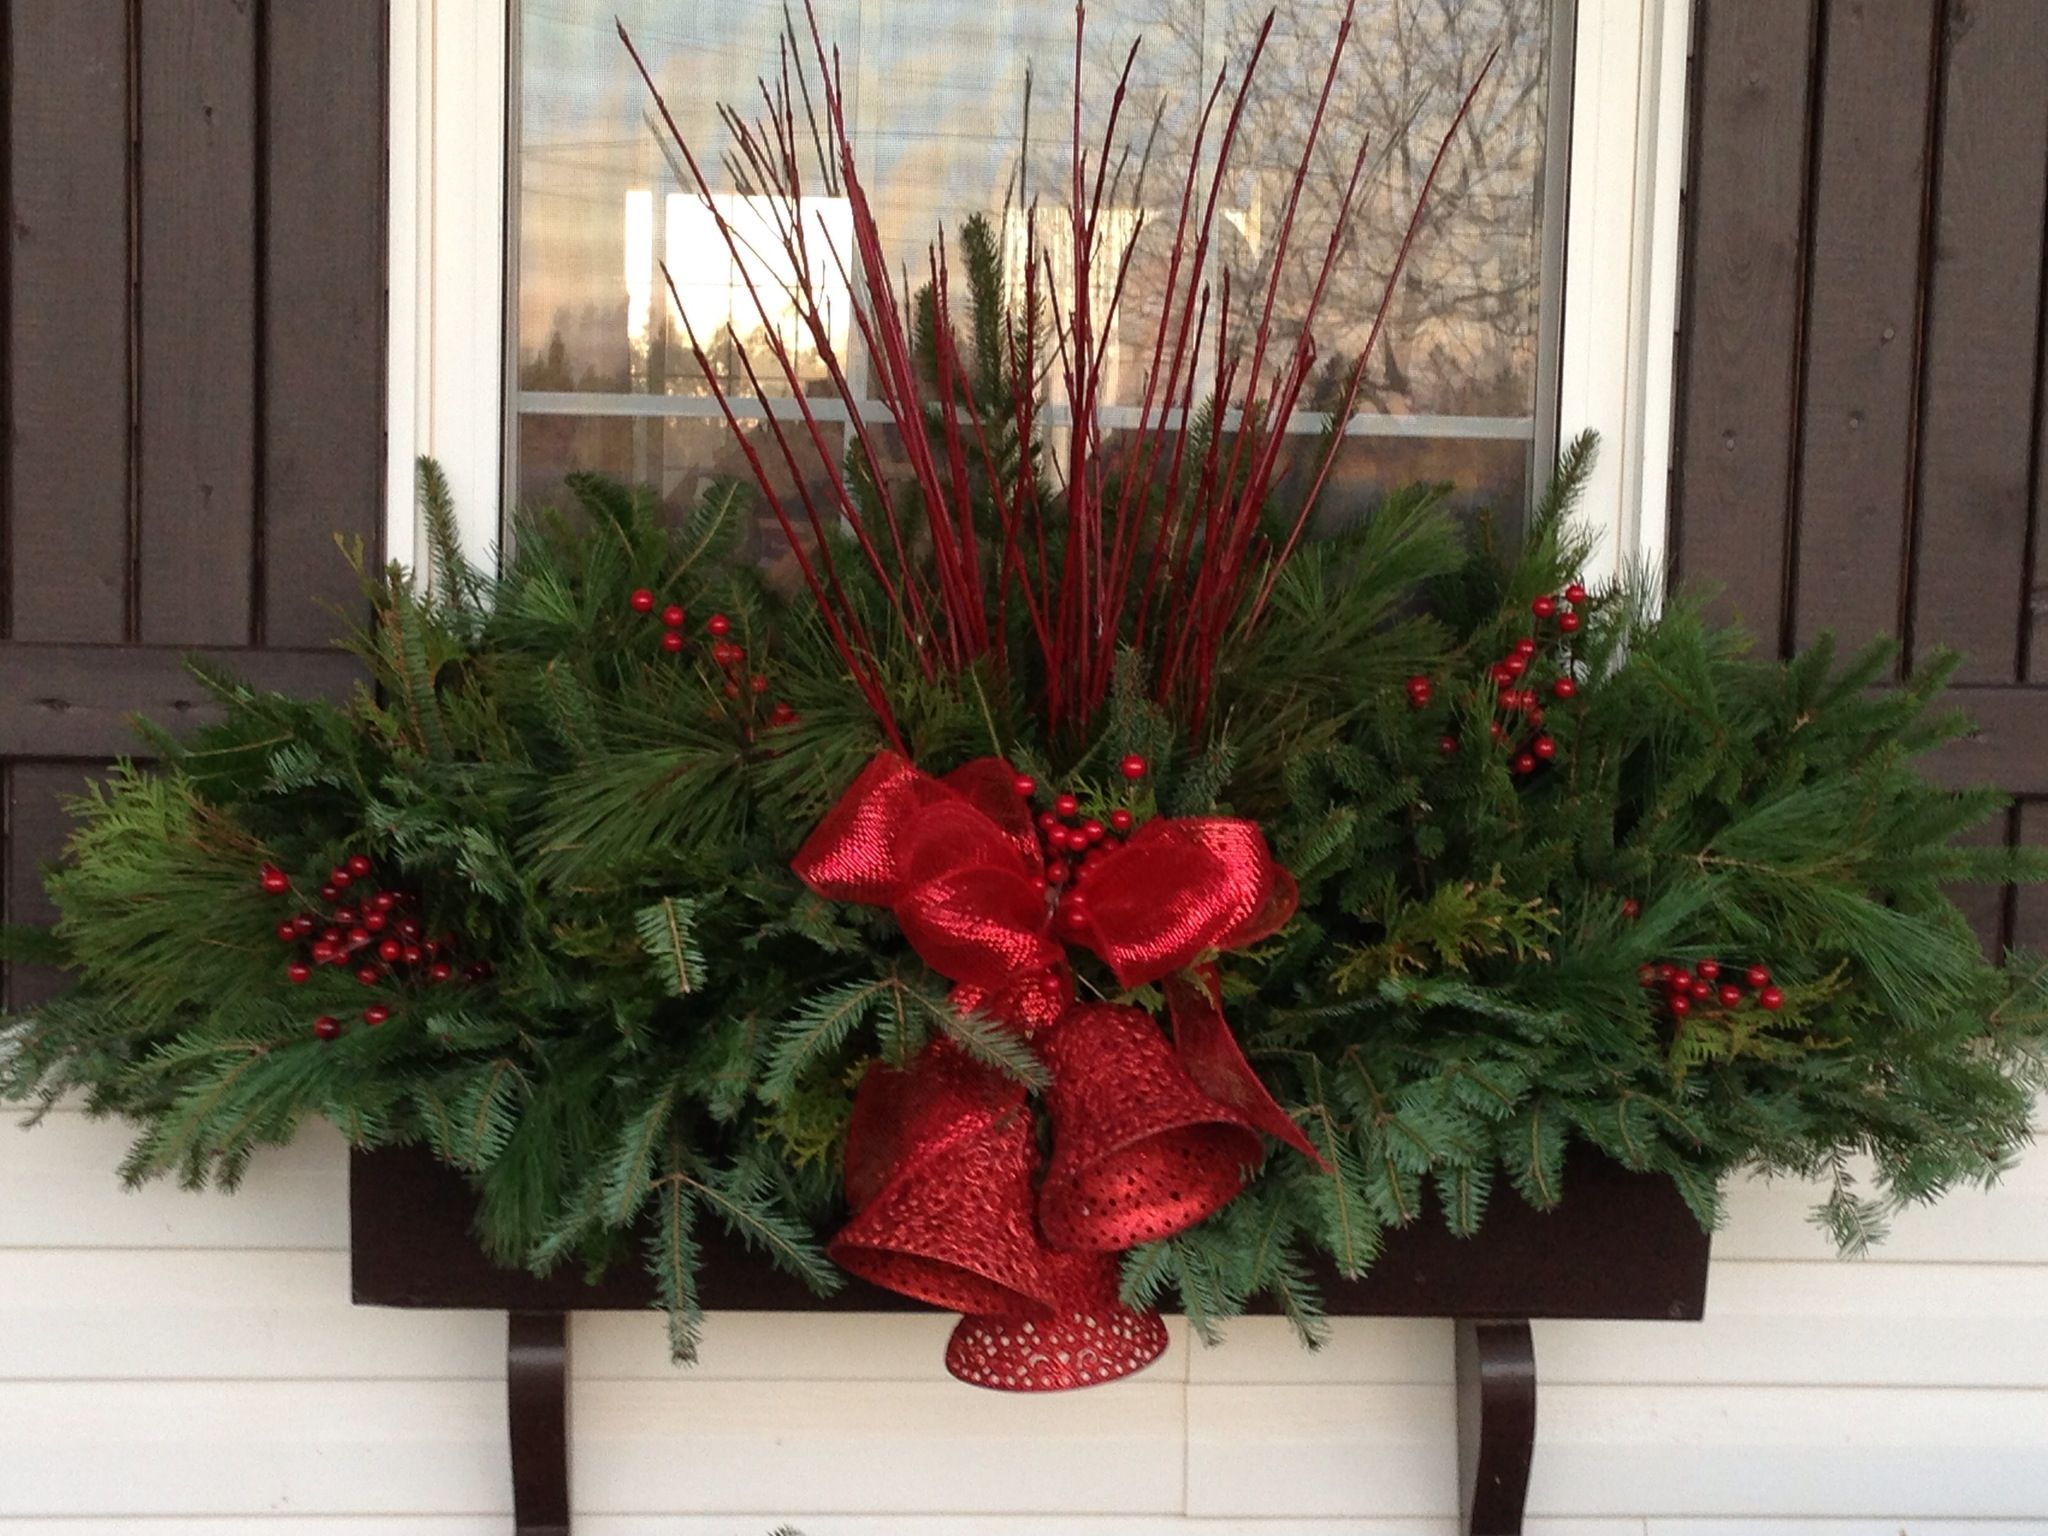 20 easy holiday window box ideas15 christmas window boxes christmas